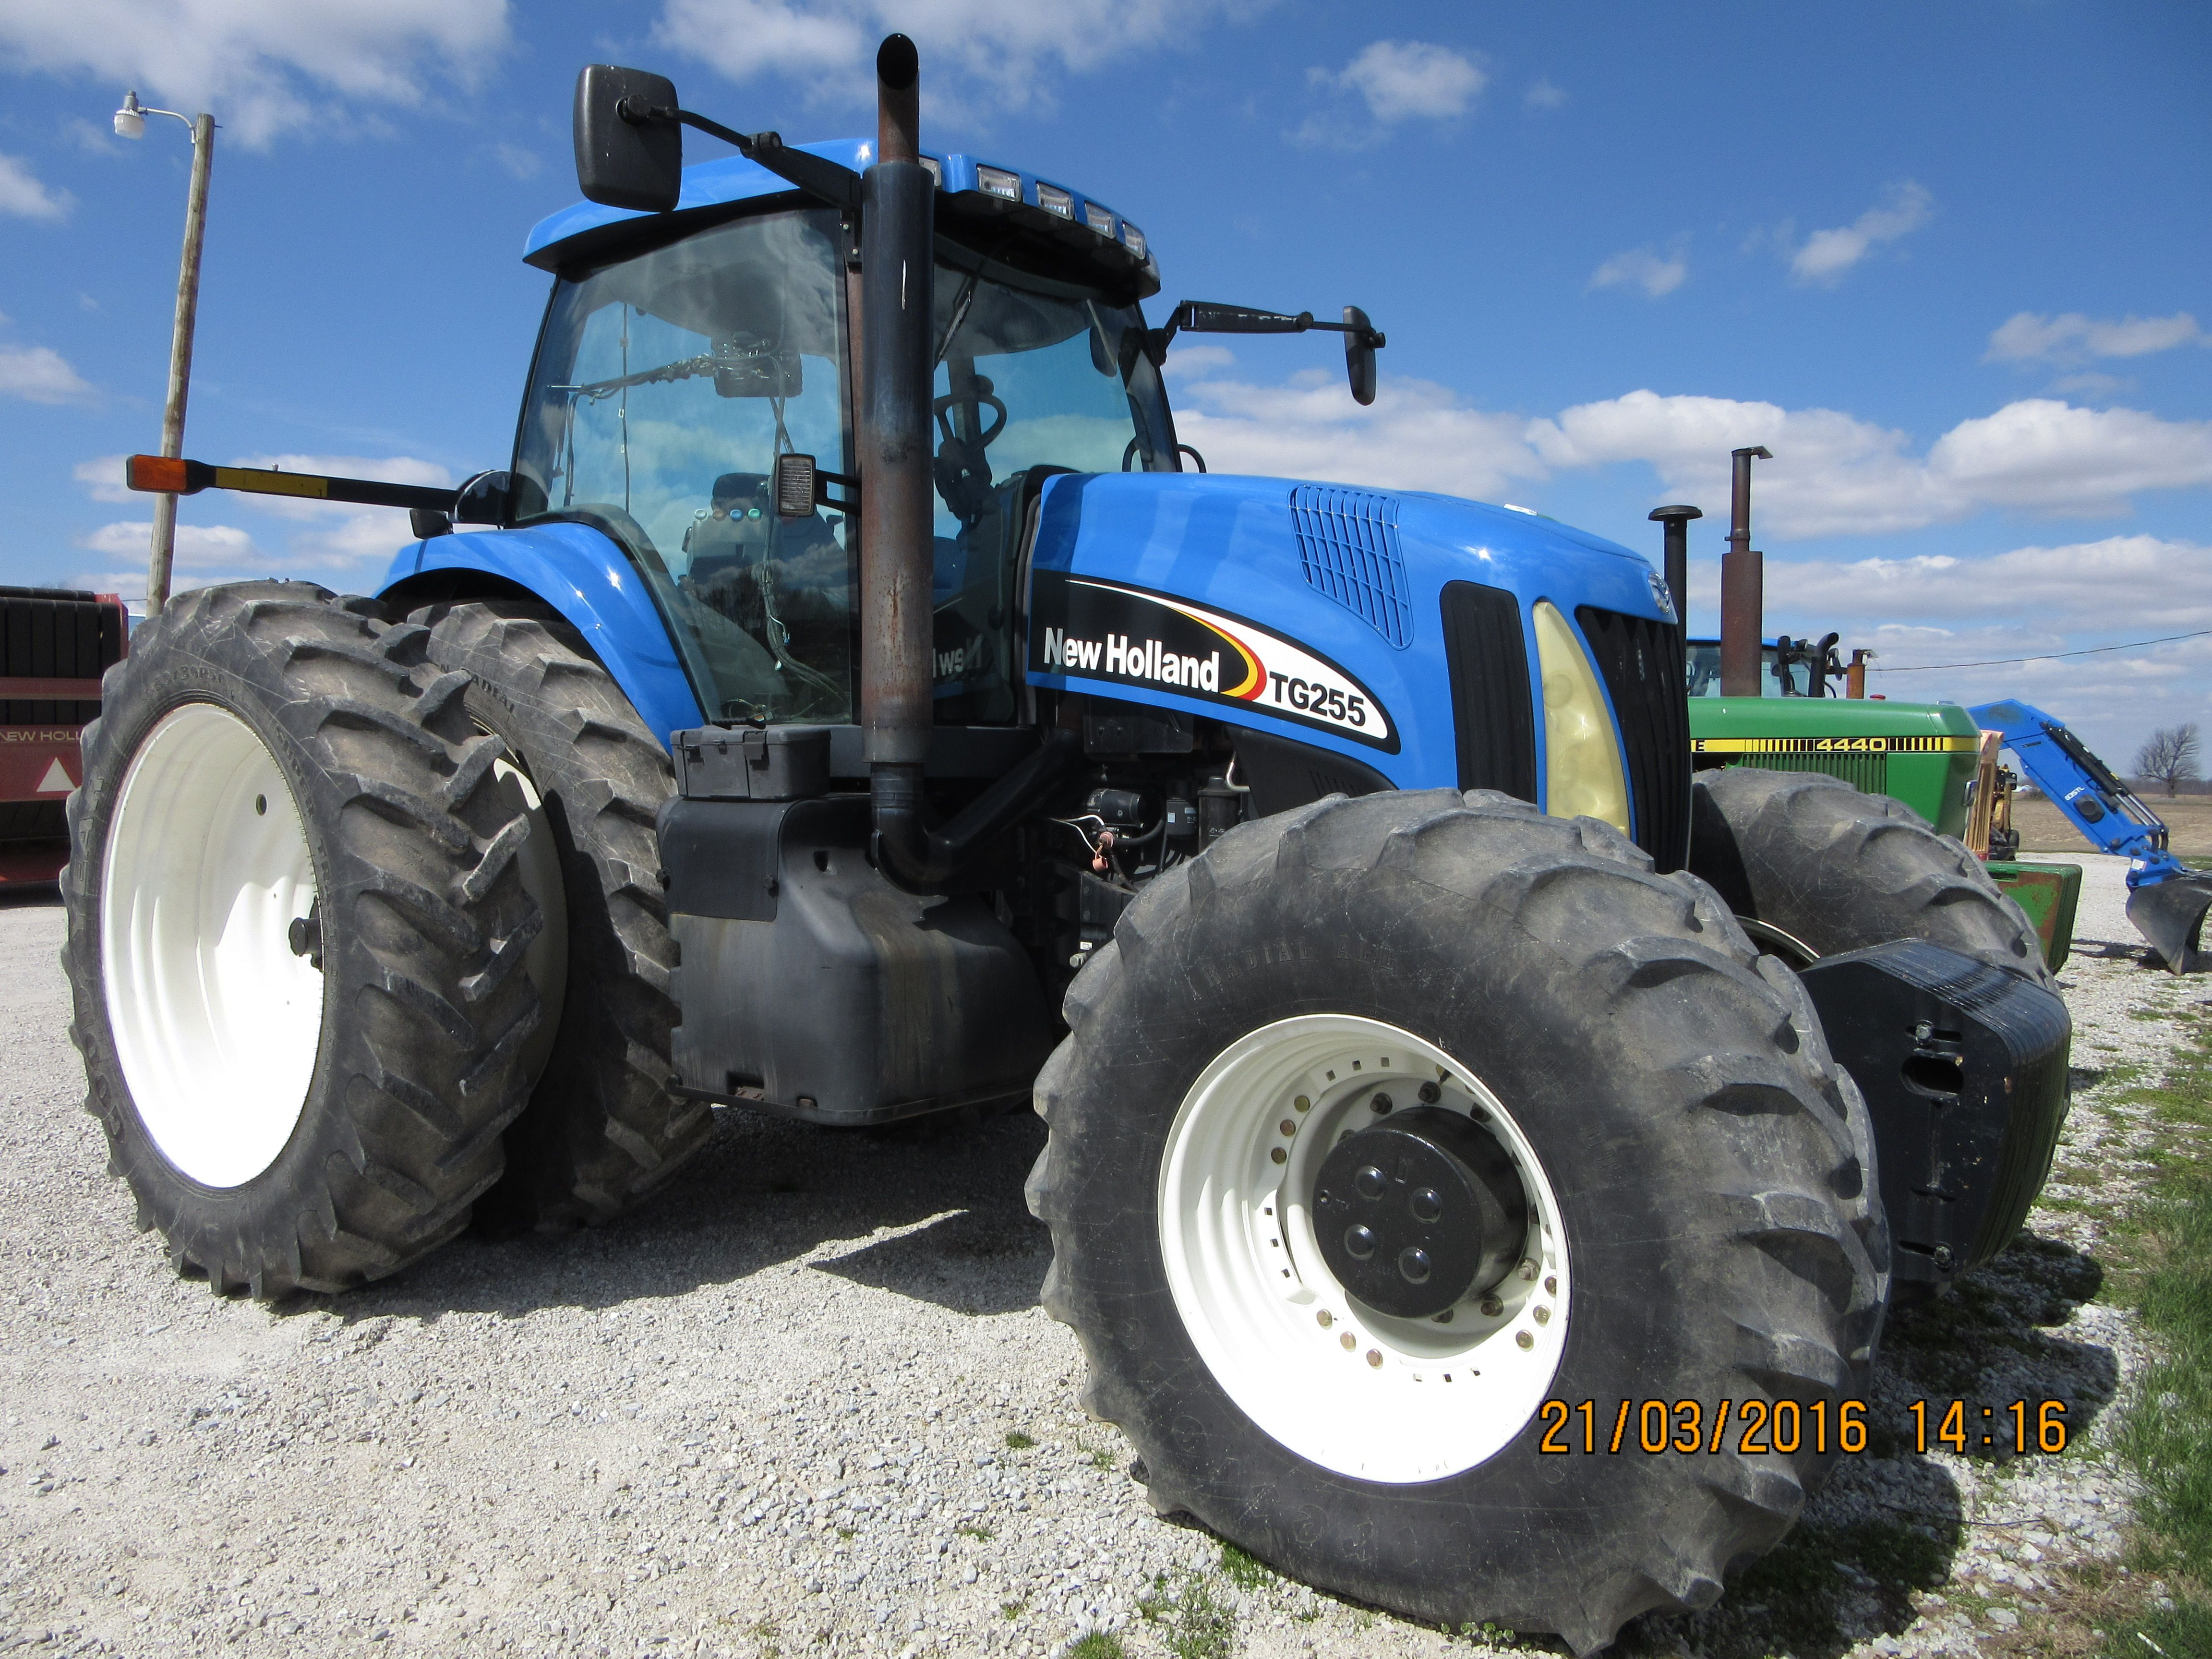 New Holland Tg255 New Holland Tractor Tractors New Holland